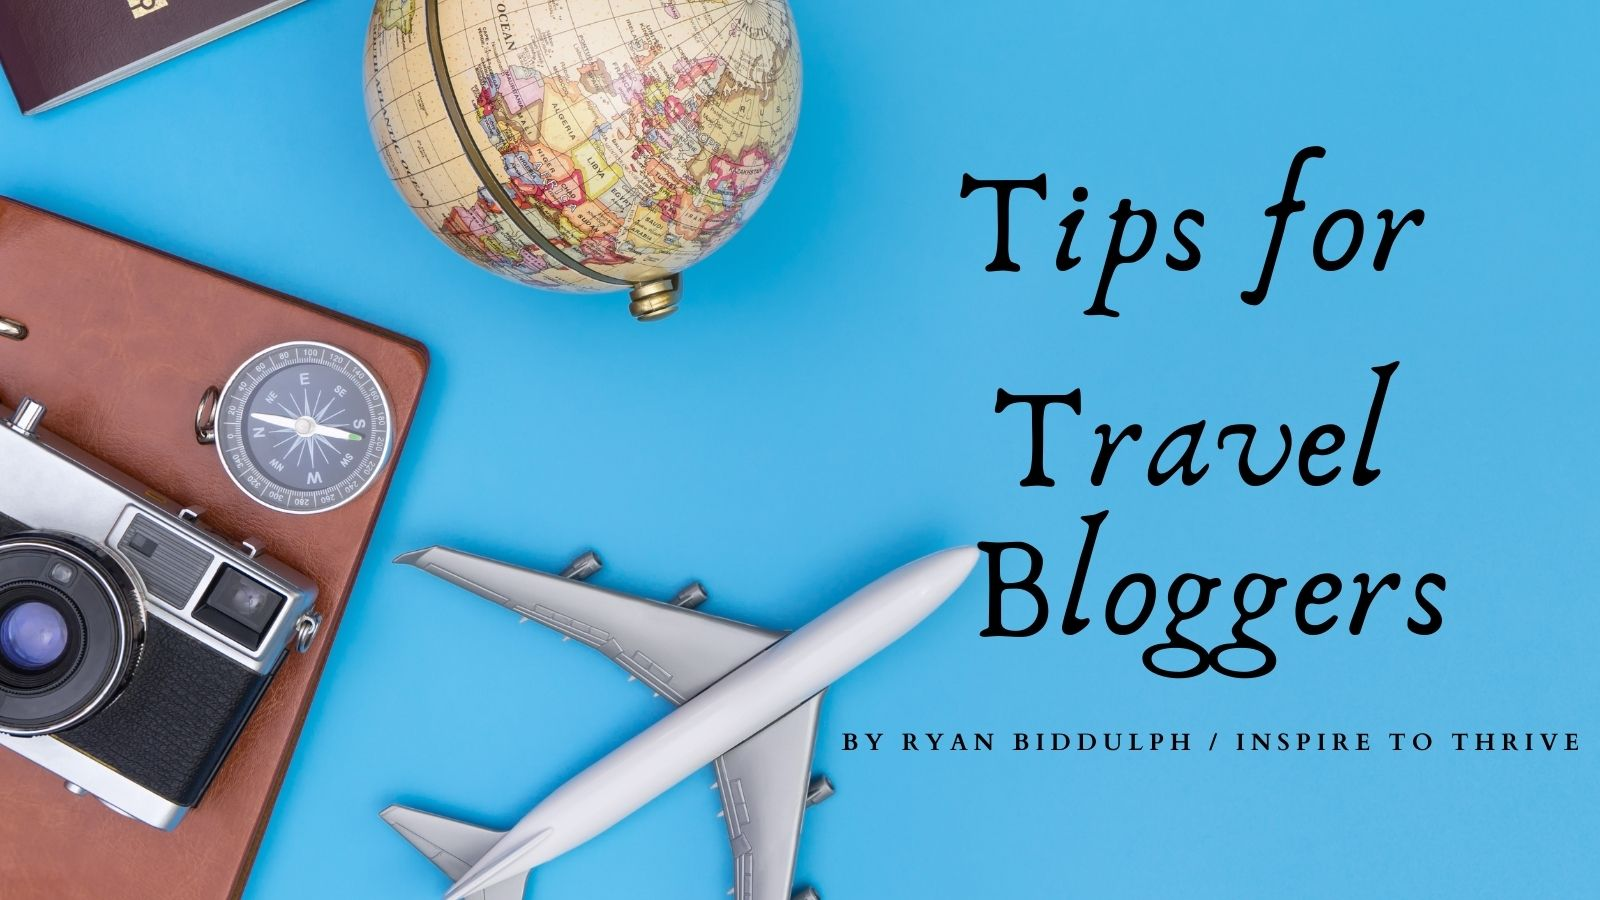 tips for travel bloggers by Ryan